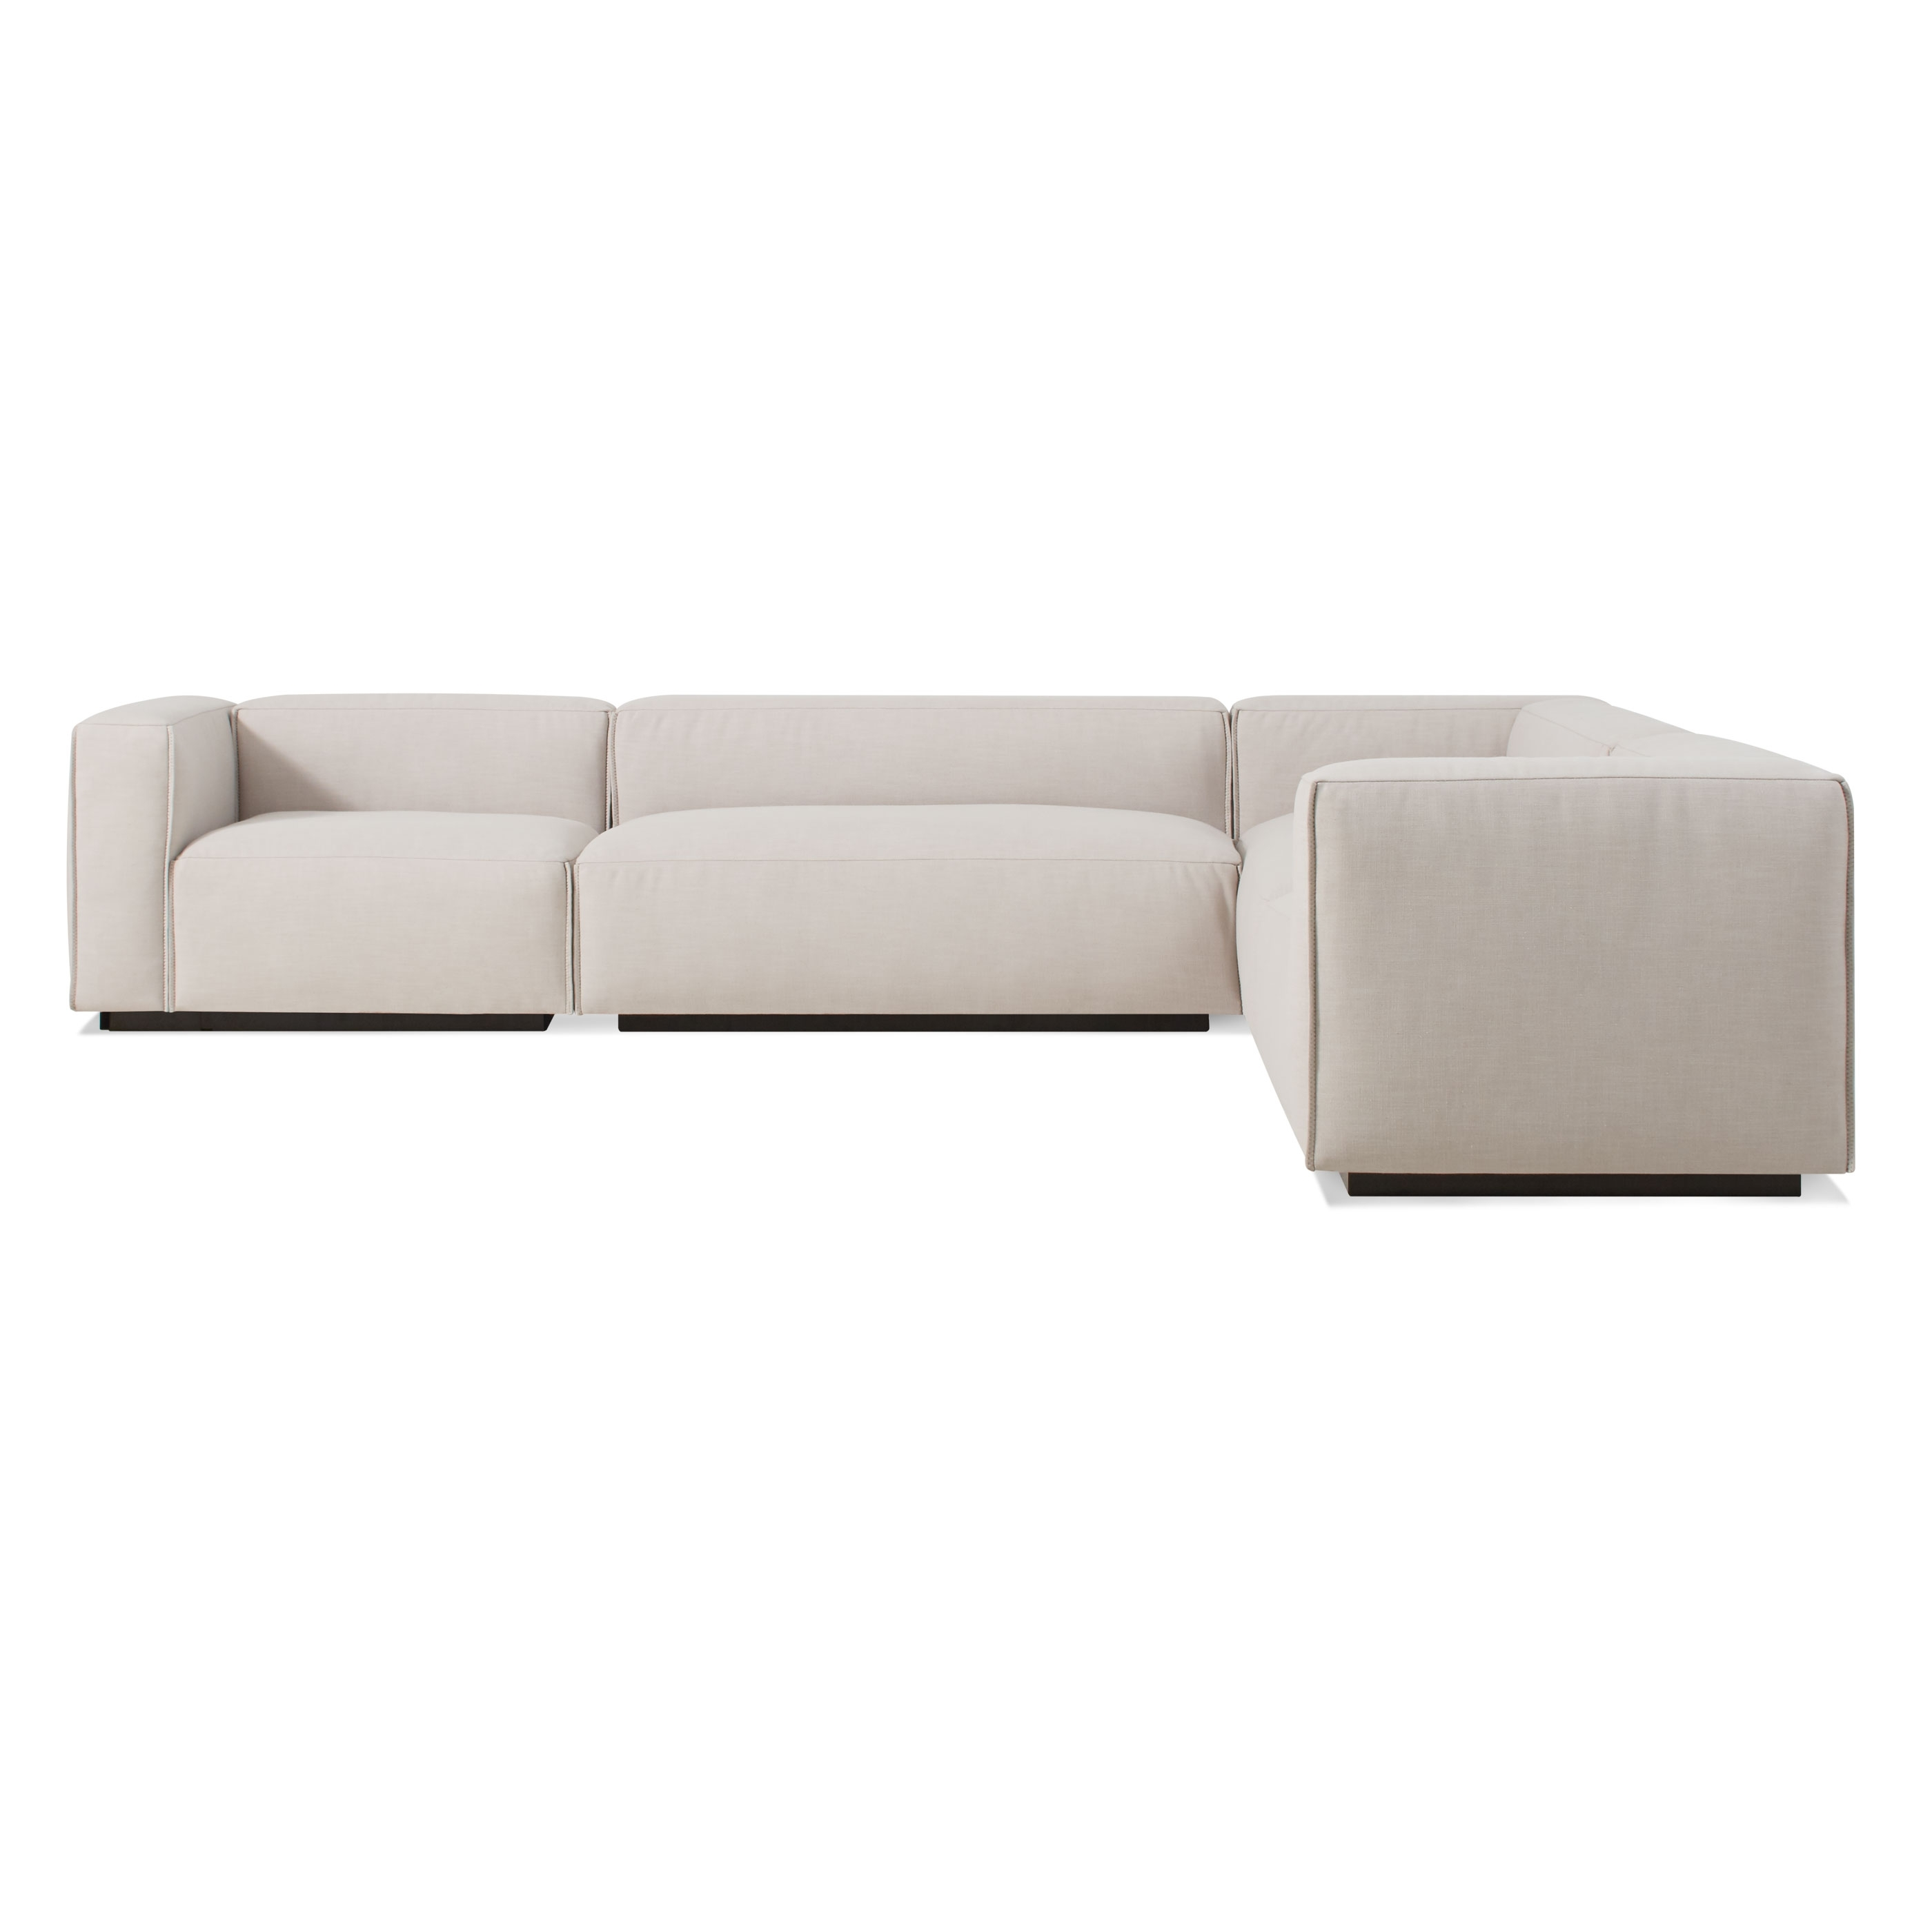 Blu Dot In Popular Hawaii Sectional Sofas (View 4 of 15)